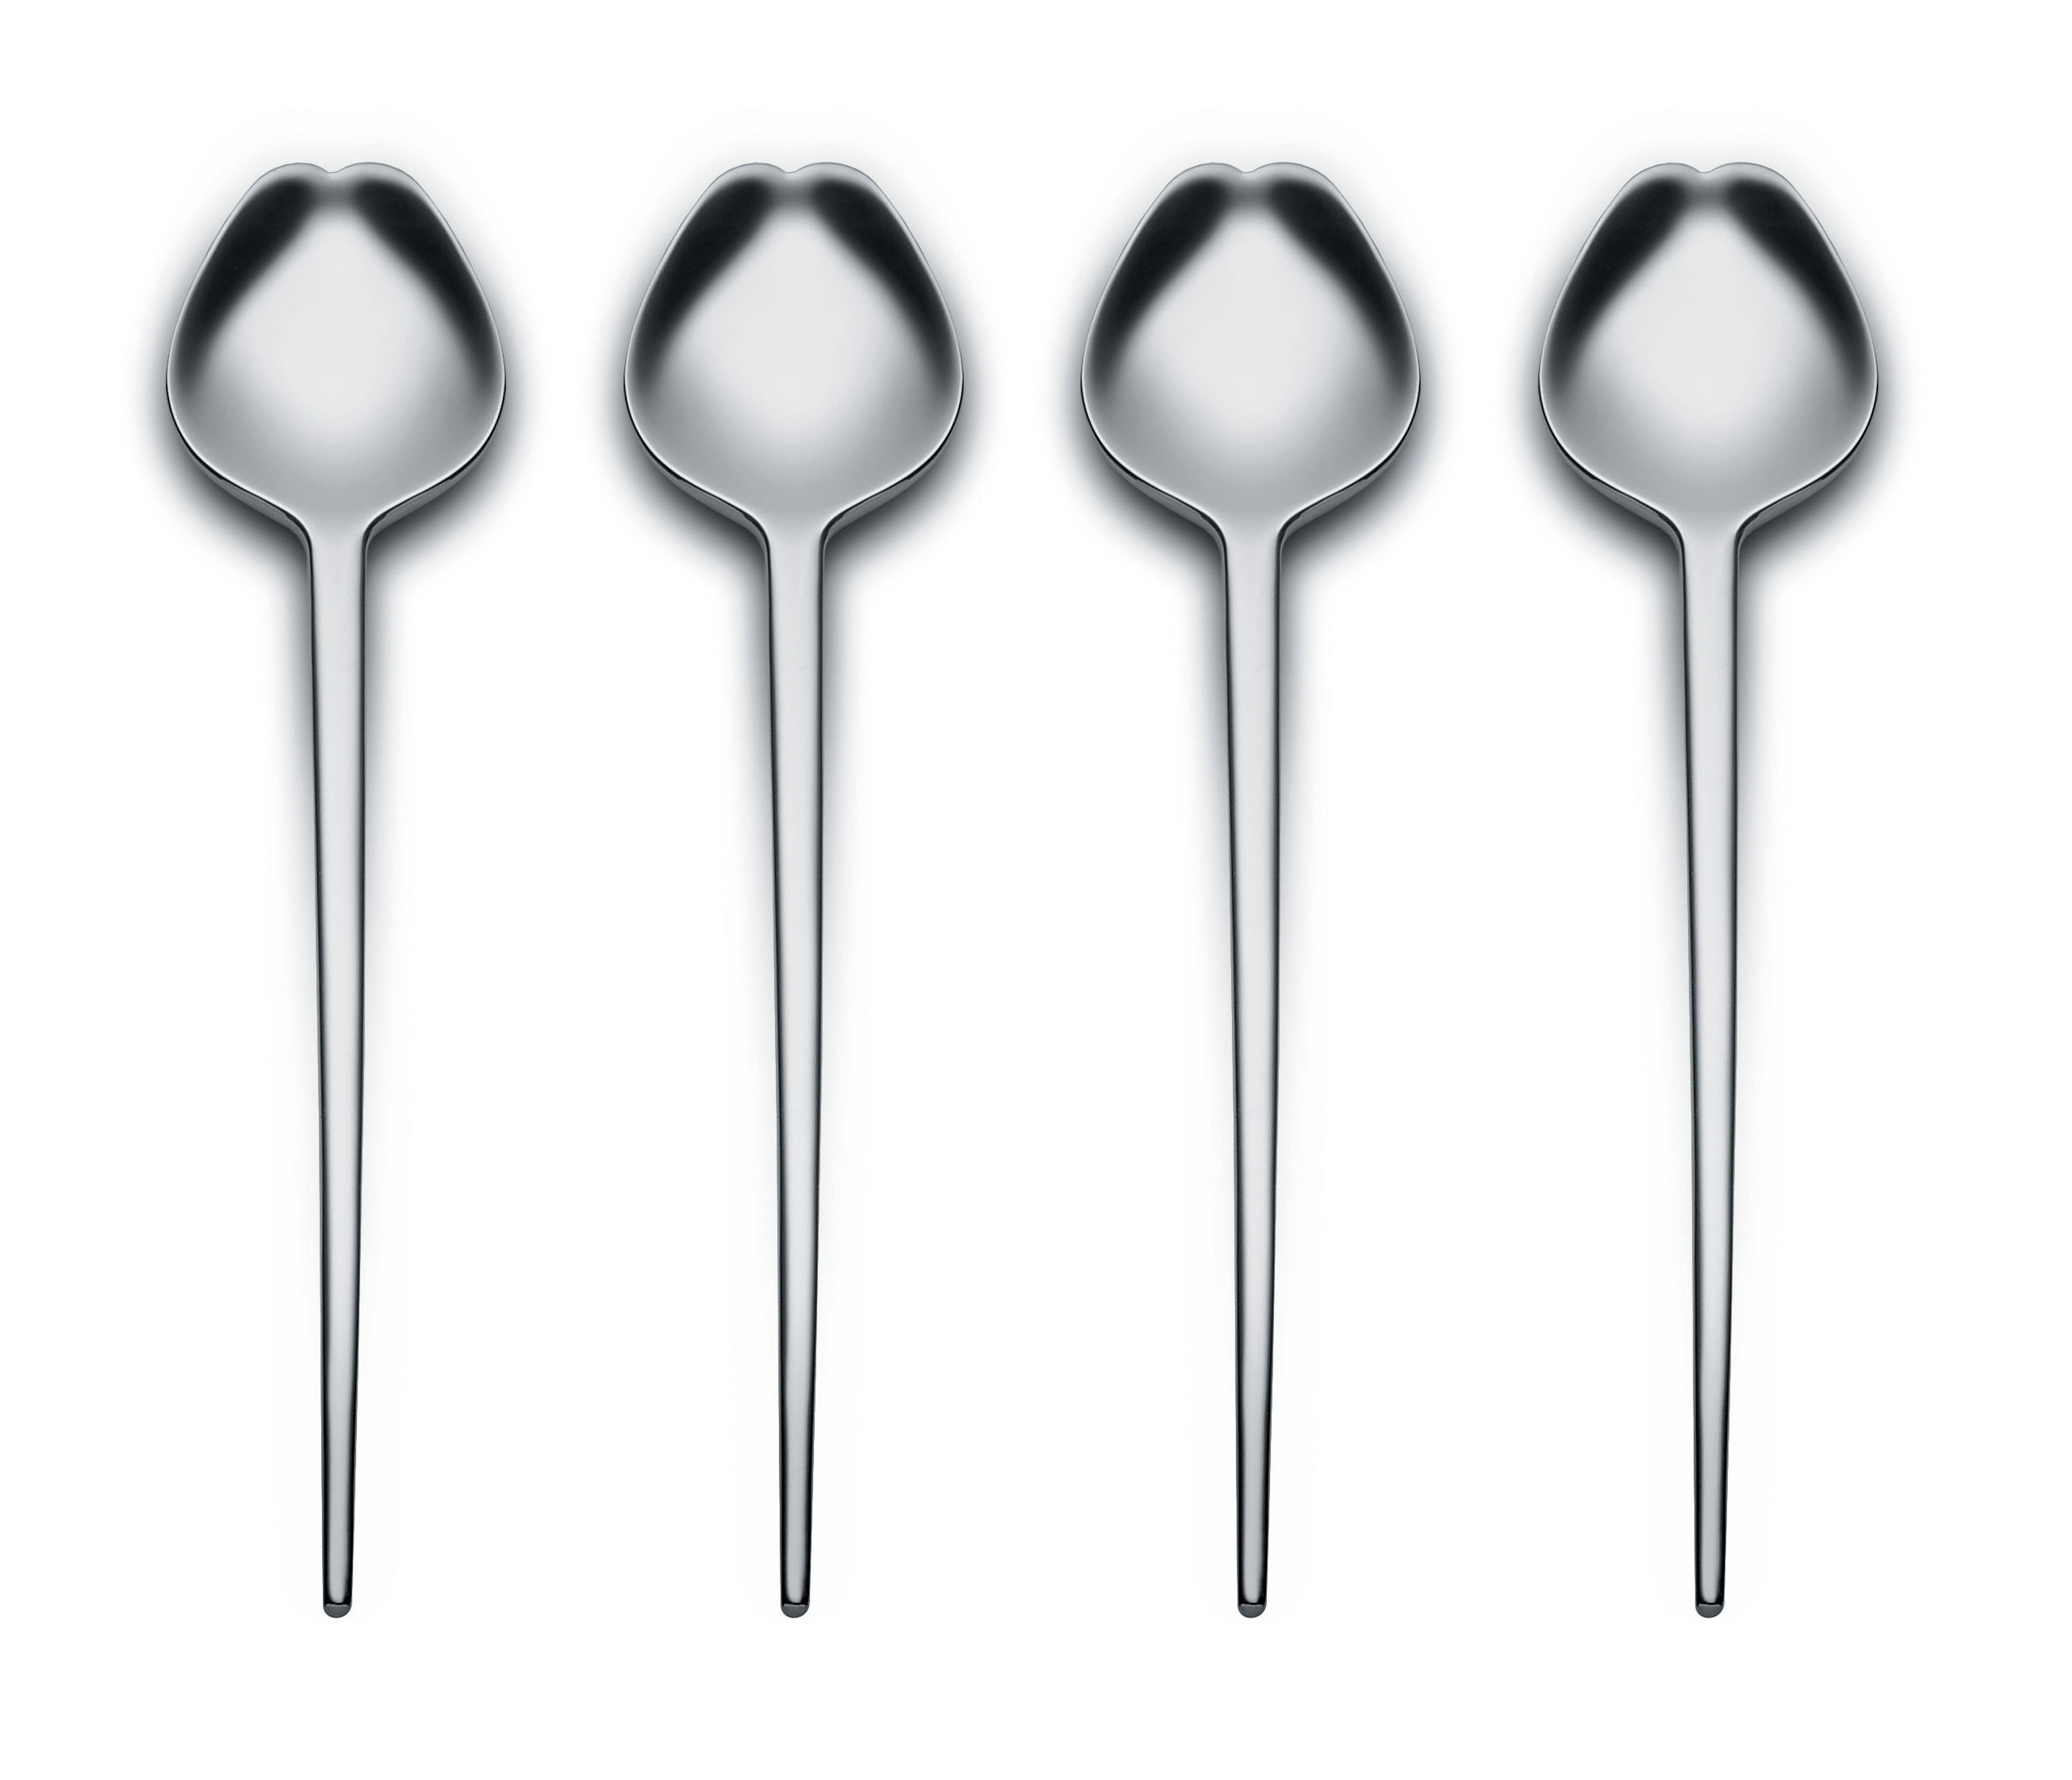 Tableware - Cutlery - Human Collection Spoon - Set of 4 - By Bruno Moretti and Guy Savoy by Alessi - Shiny steel - Stainless steel 18/10